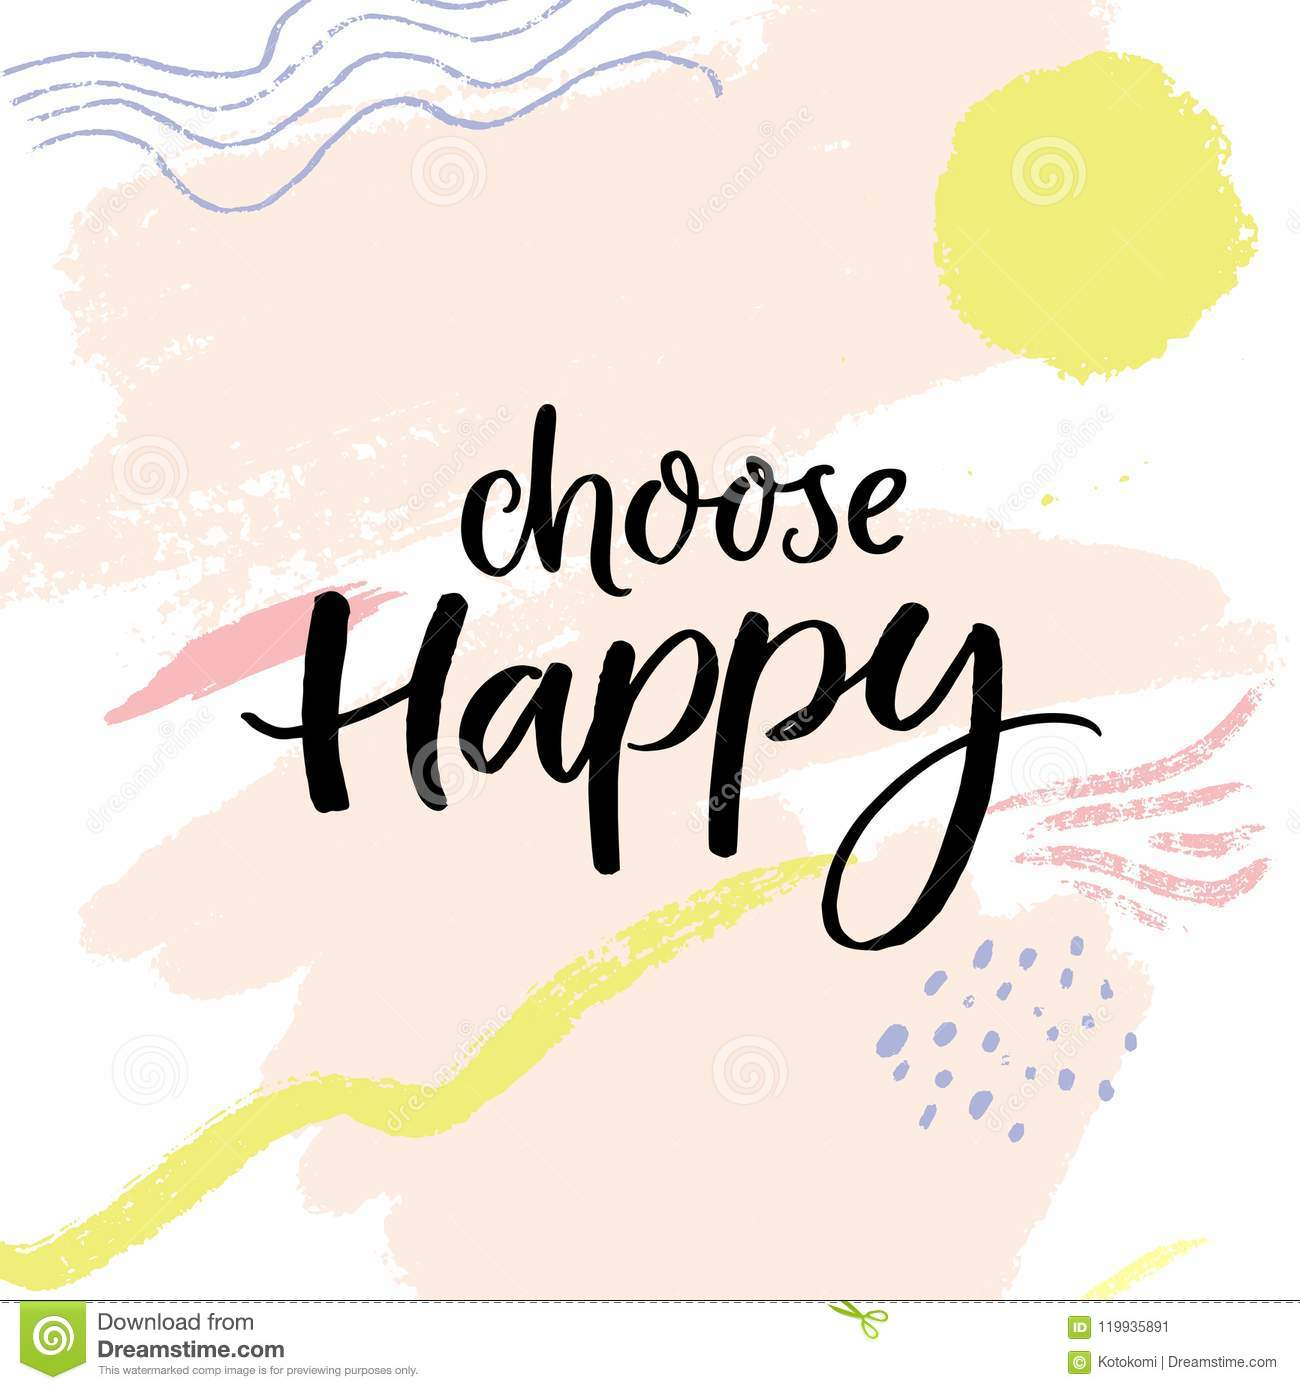 Choose Happy Positive Saying Handwritten Quote On Abstract Pastel